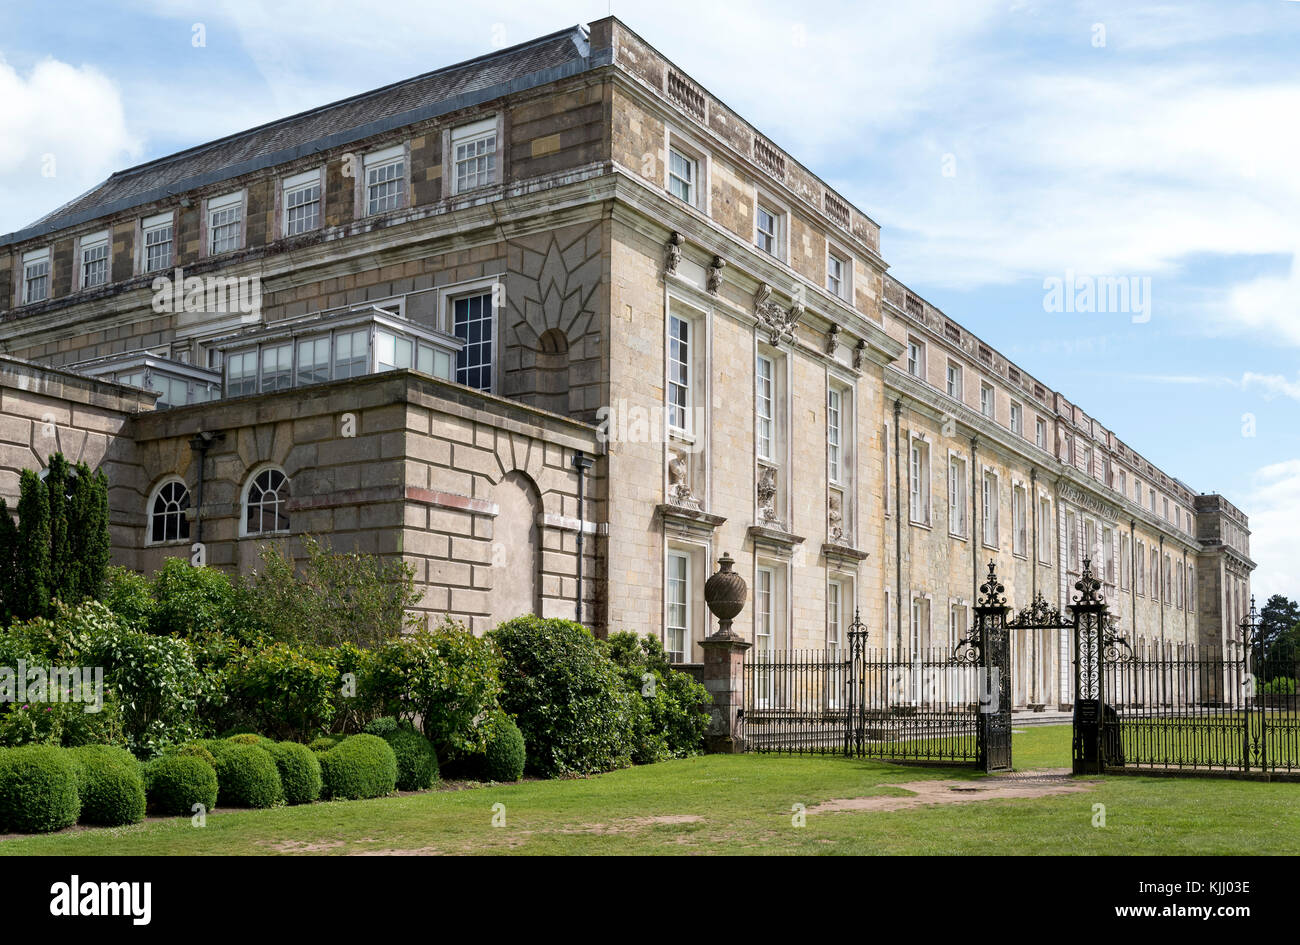 PETWORTH HOUSE (1688)          PETWORTH           WEST SUSSEX    UNITED KINGDOM - Stock Image